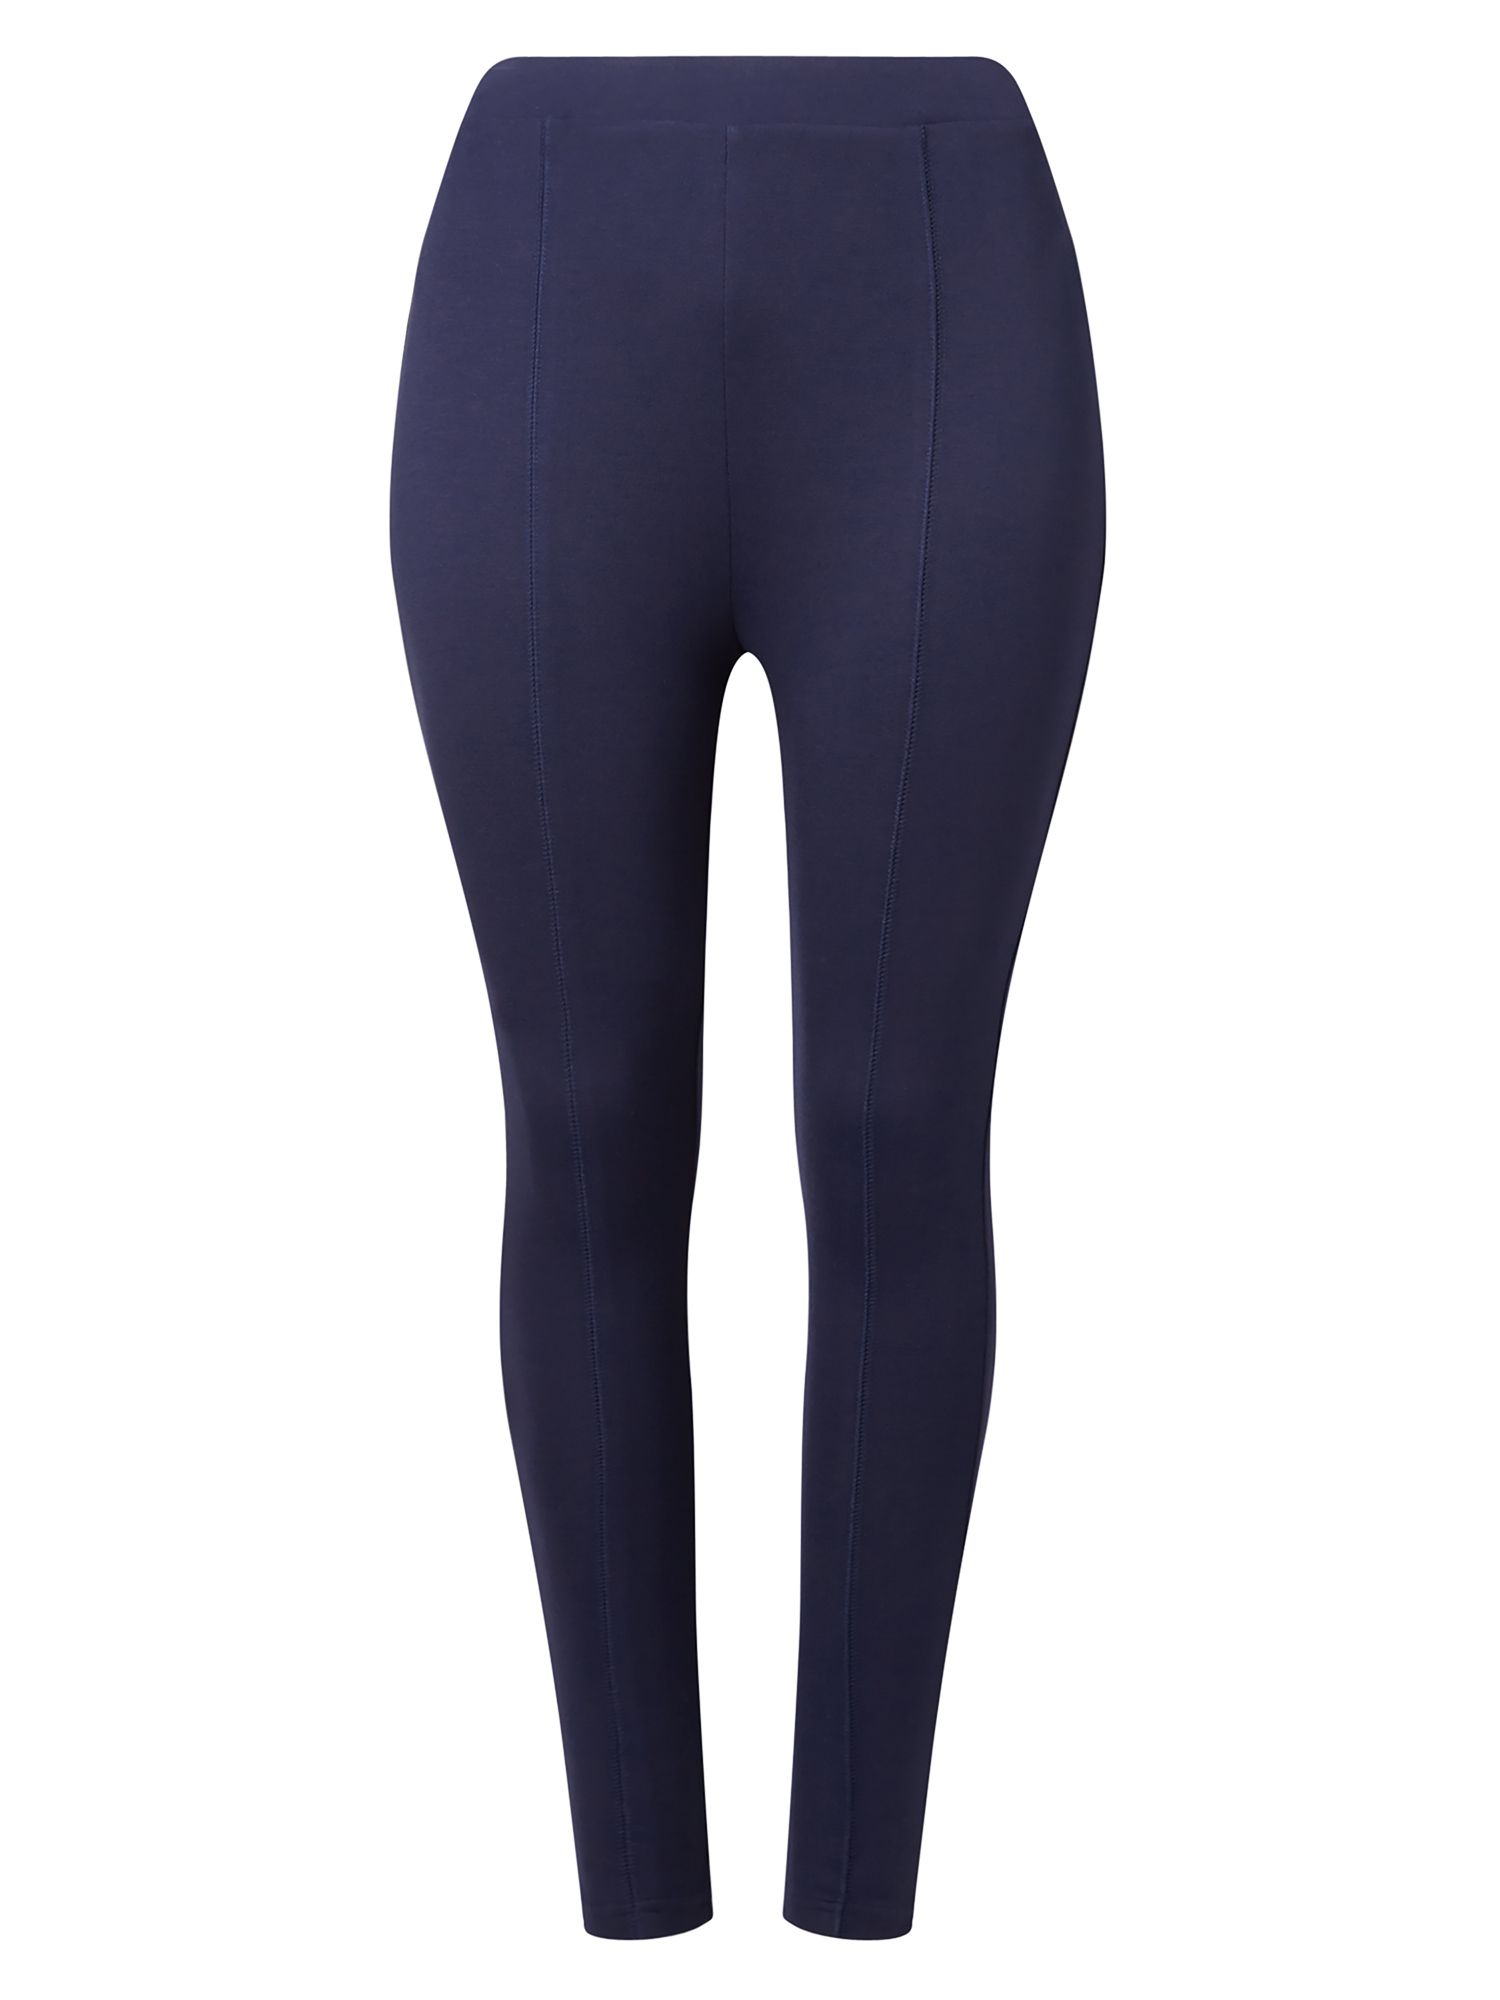 Studio 8 Eleanor Leggings, Blue